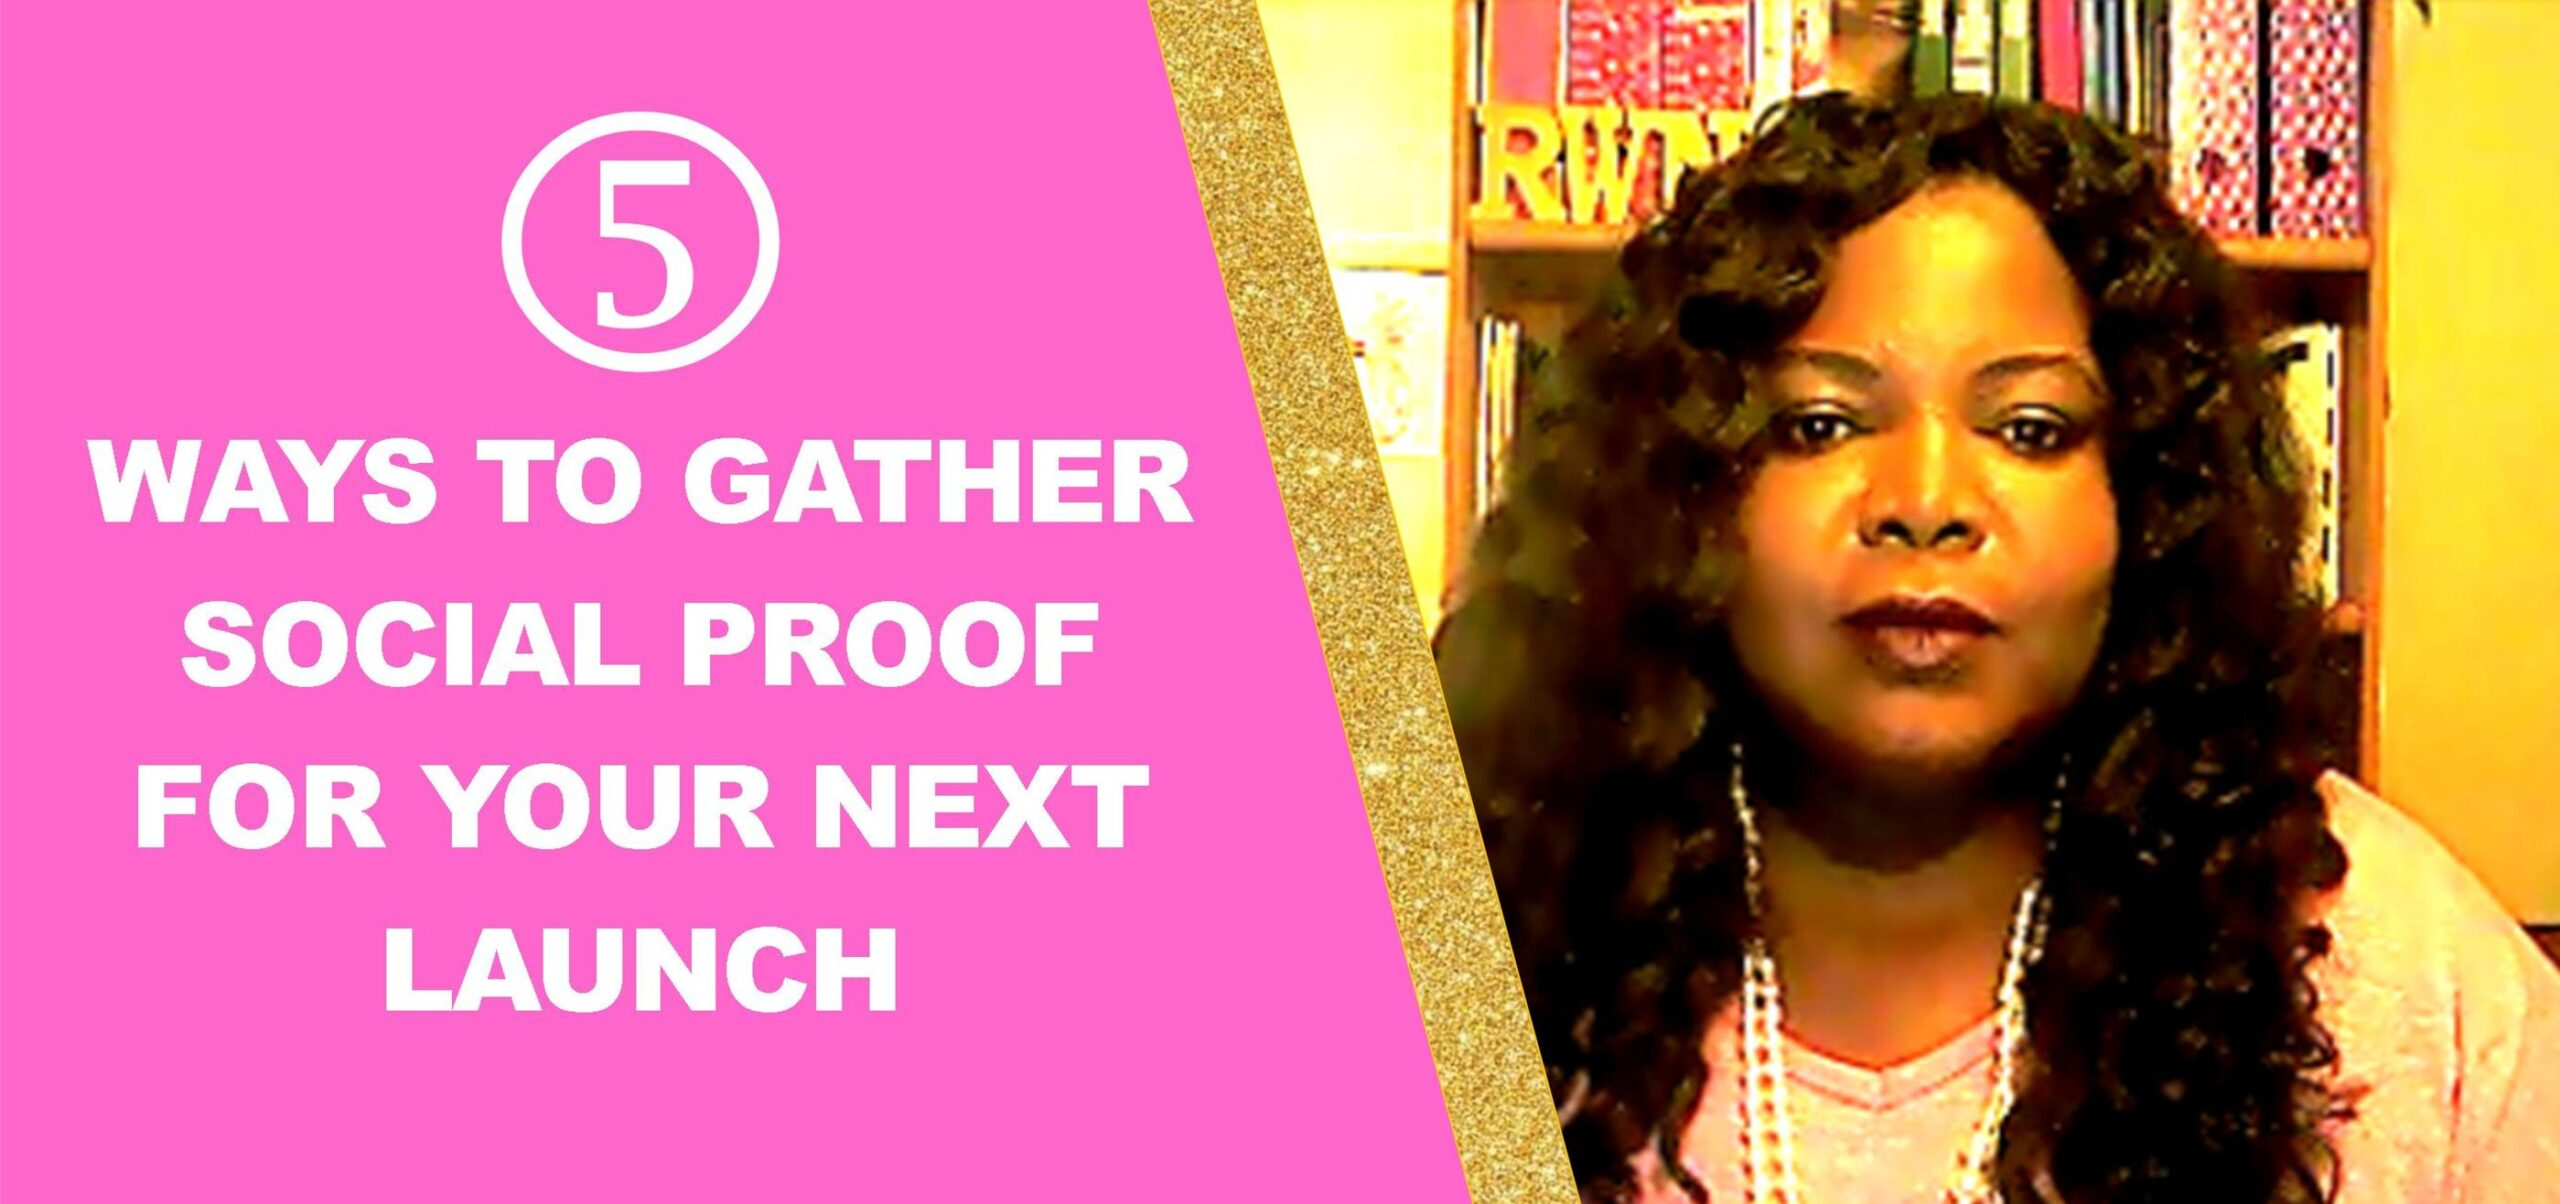 5 Simple Ways to Gather Social Proof Before a Launch